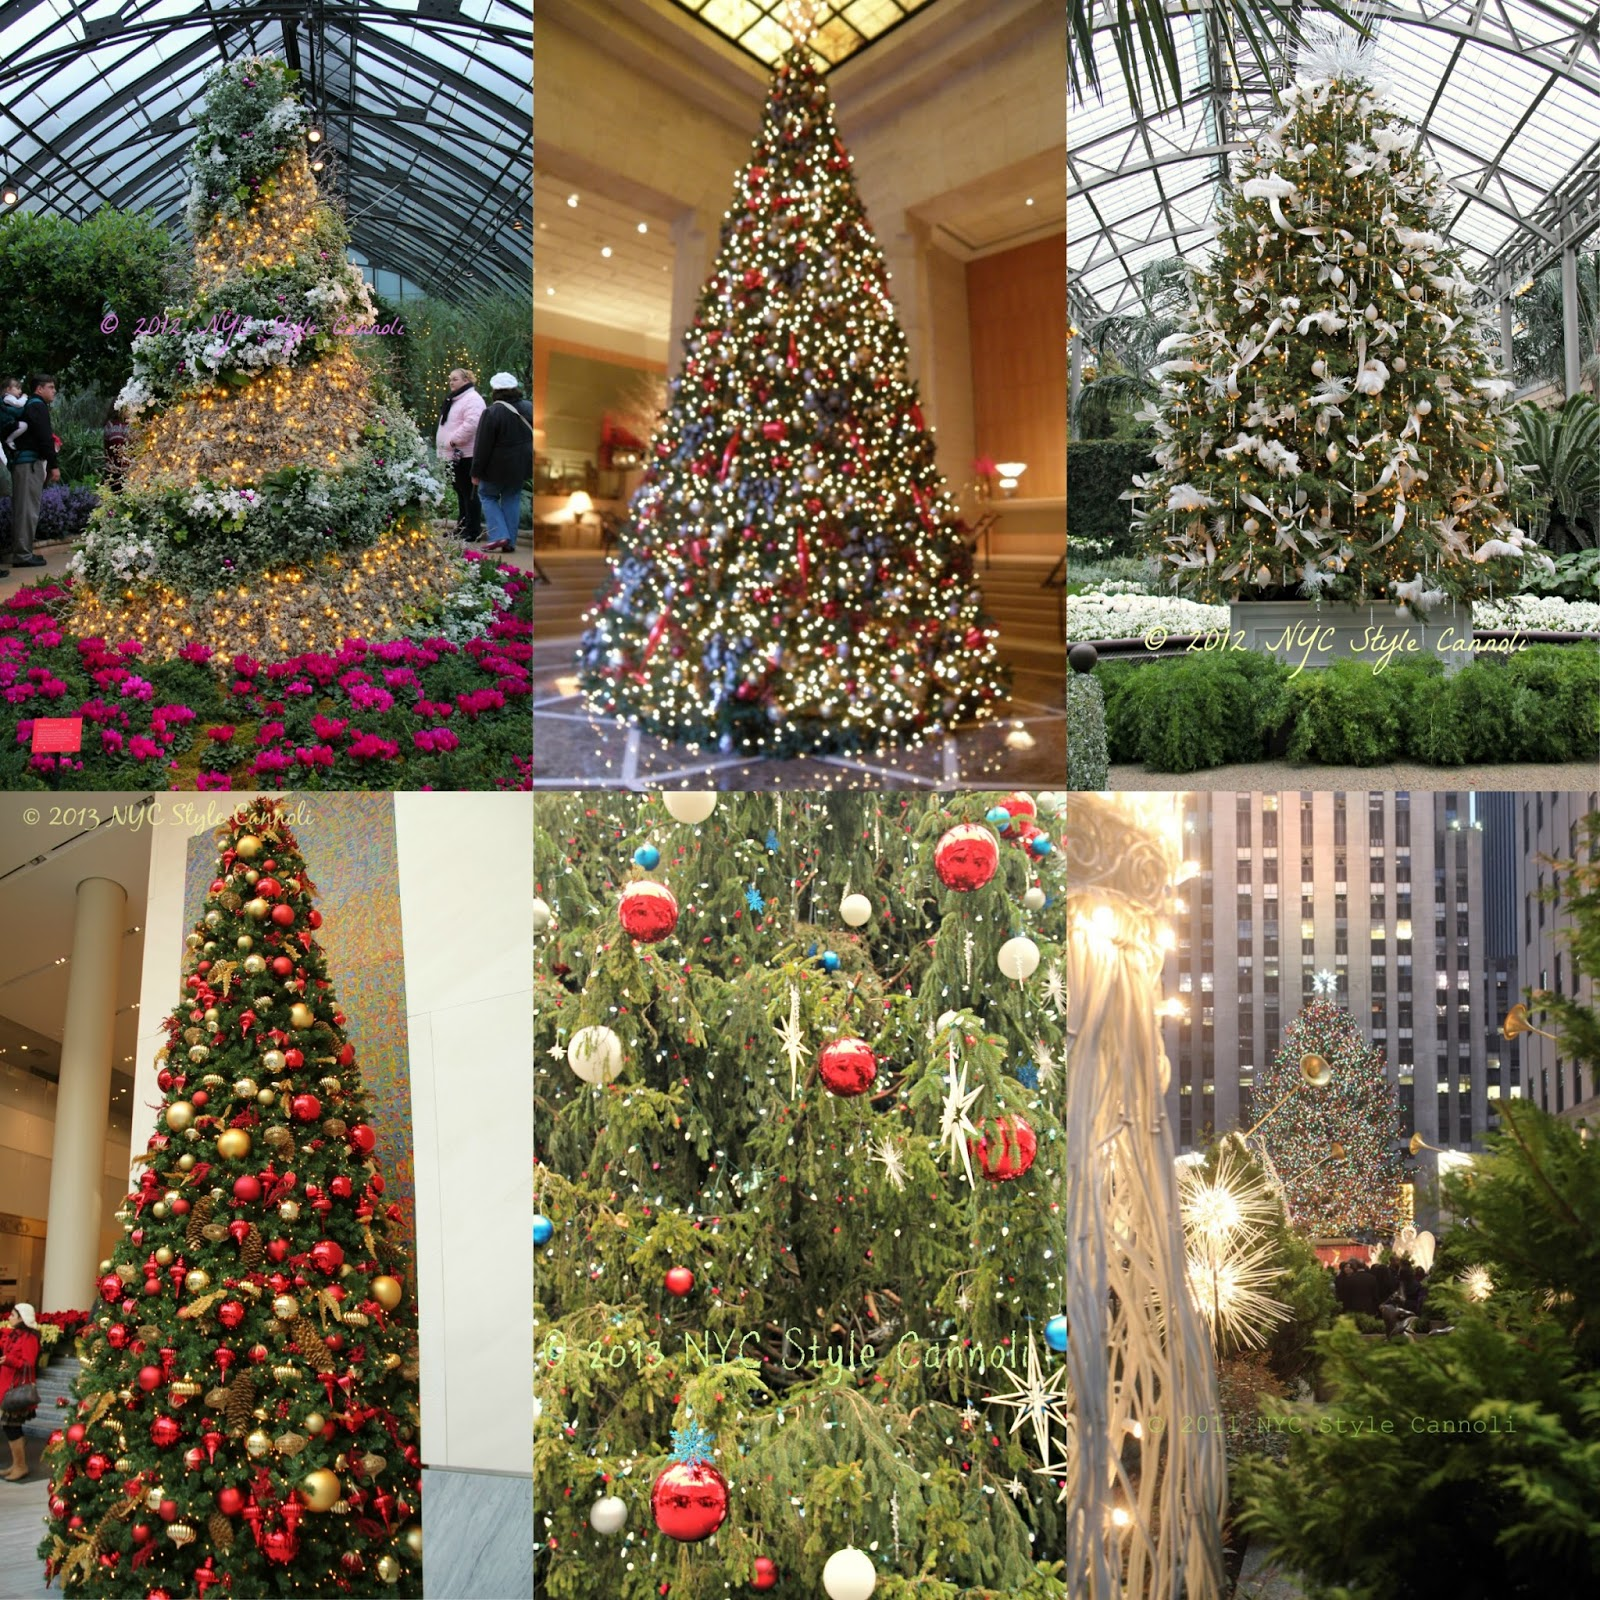 The 10 Best Christmas Trees in NYC | NYC, Style & a little Cannoli